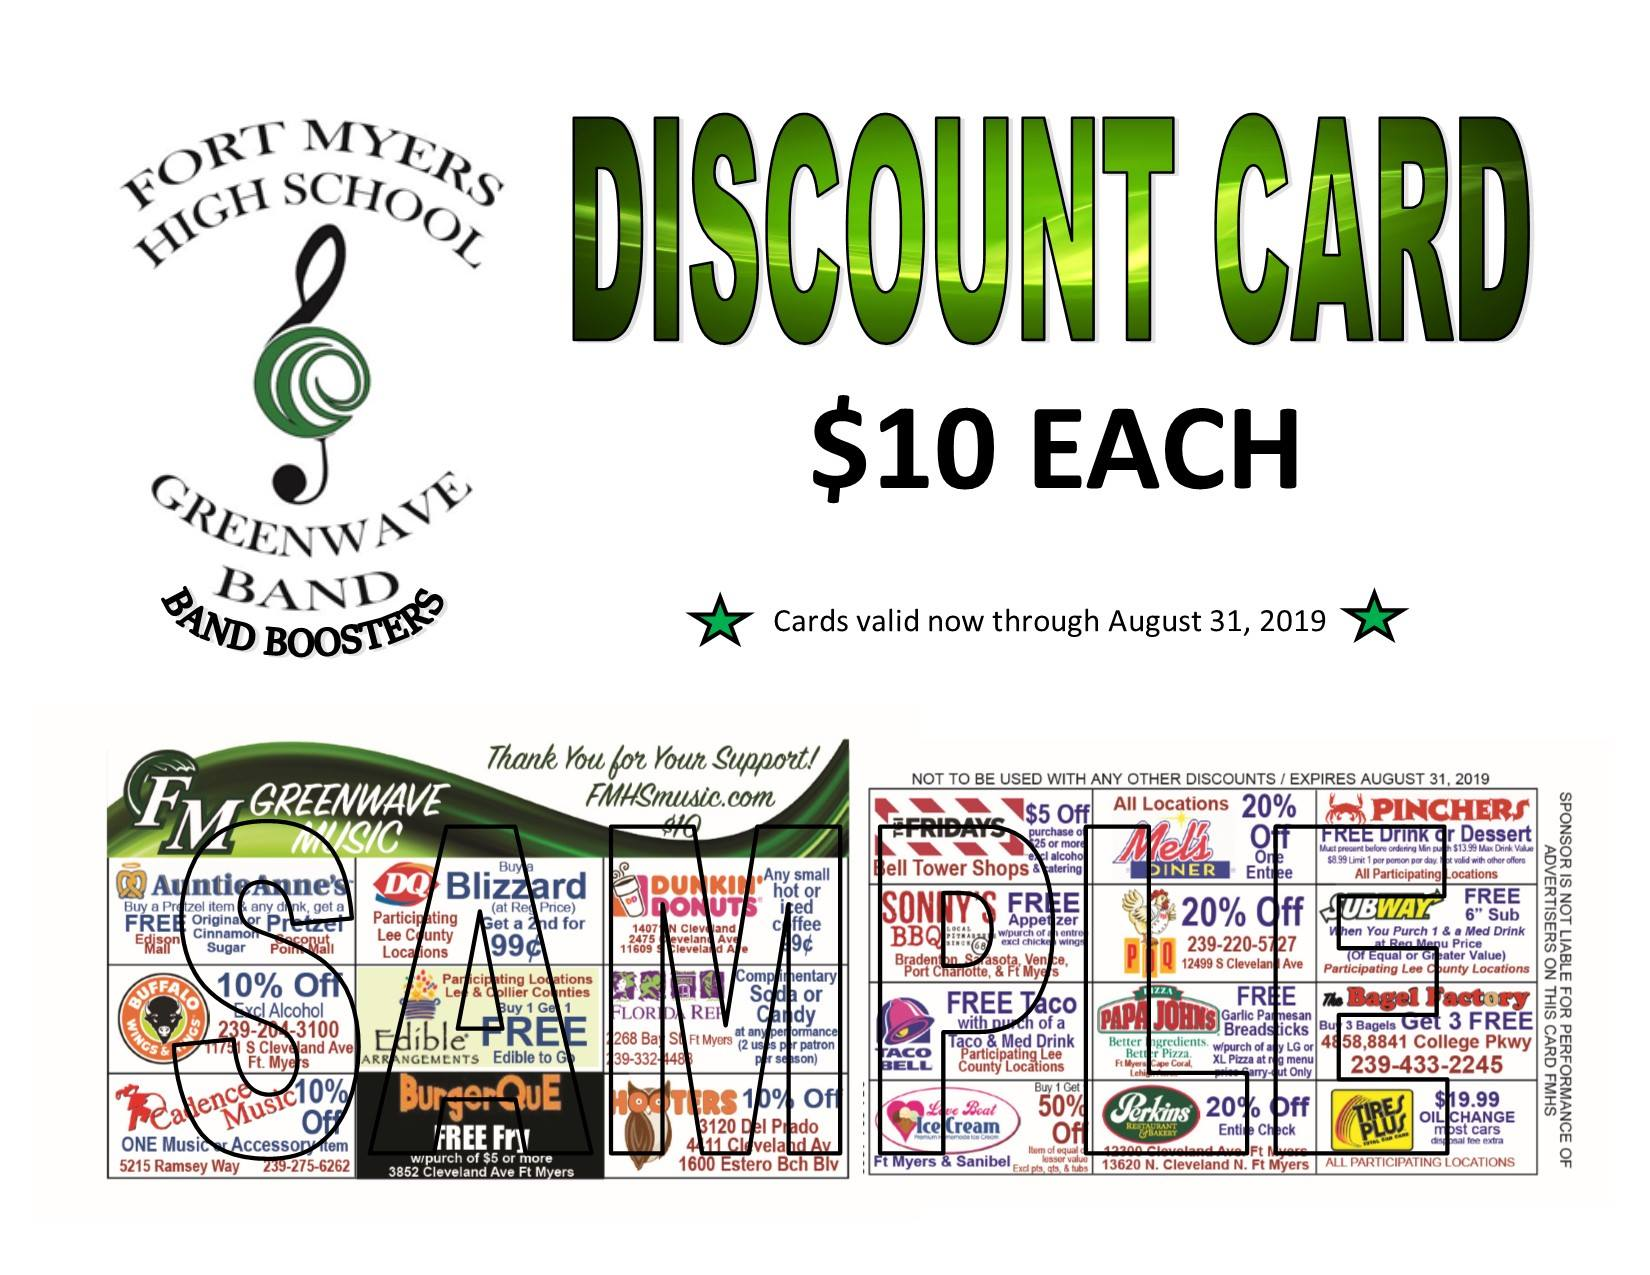 discount card fundraiser - Copy